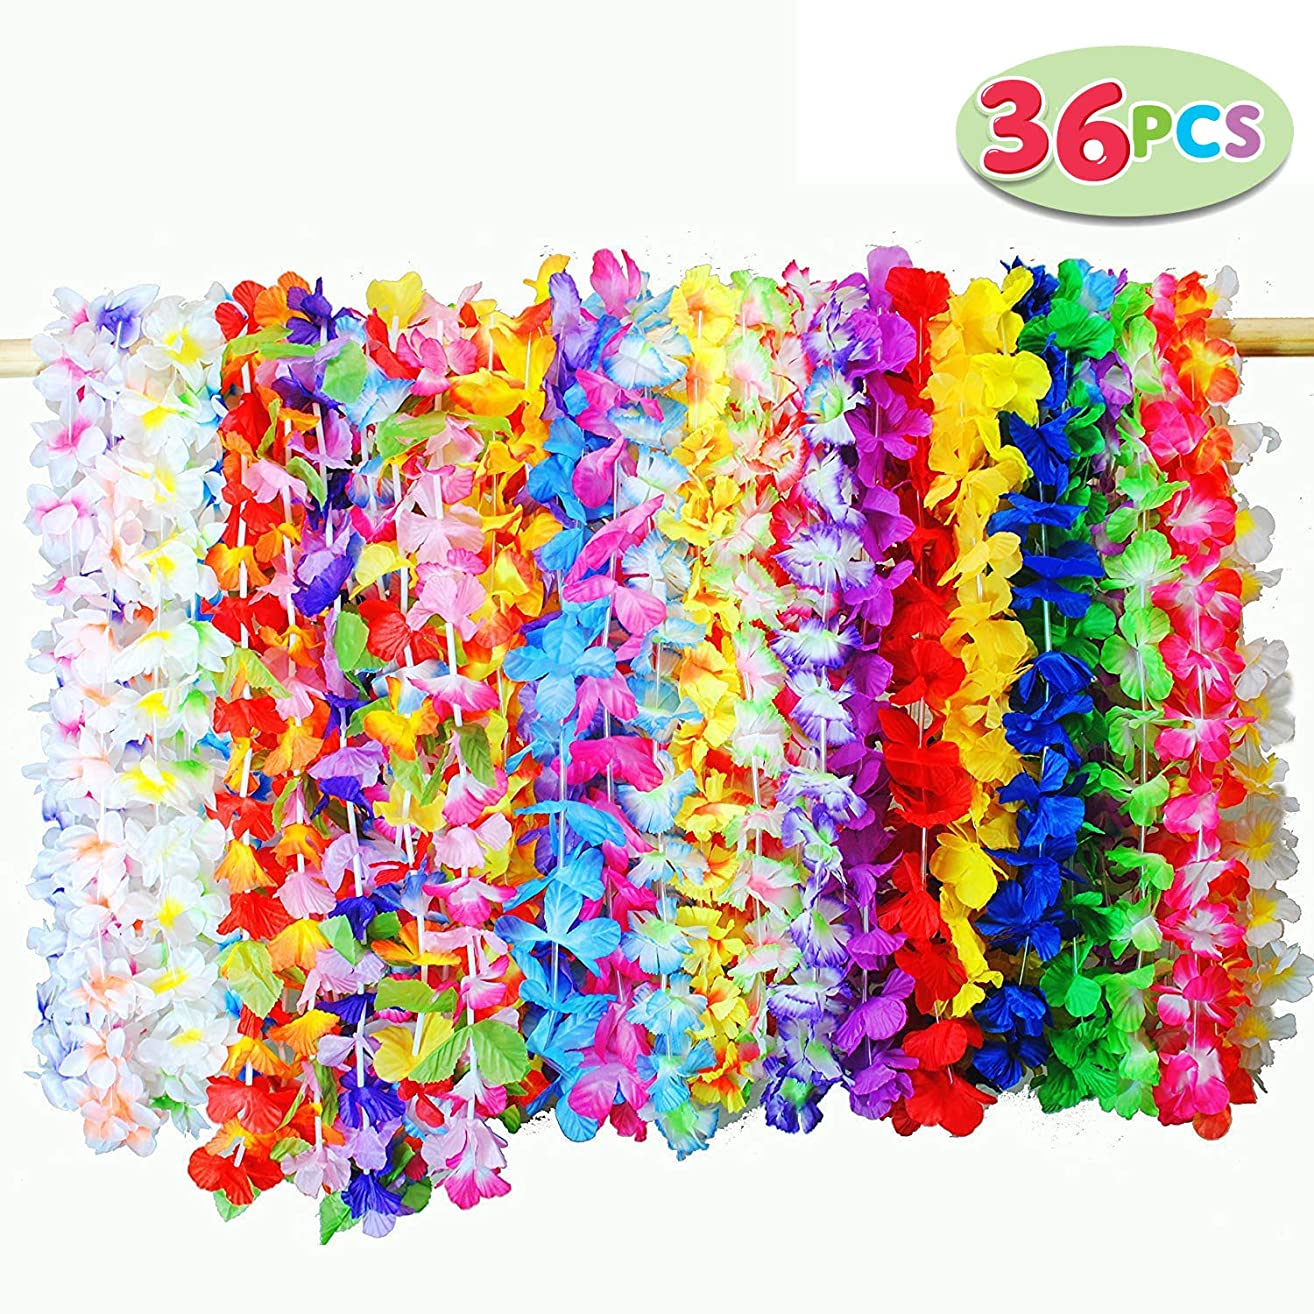 Joyin Toy 36 Counts Tropical Hawaiian Luau Flower Lei Party Favors (3 Dozen)